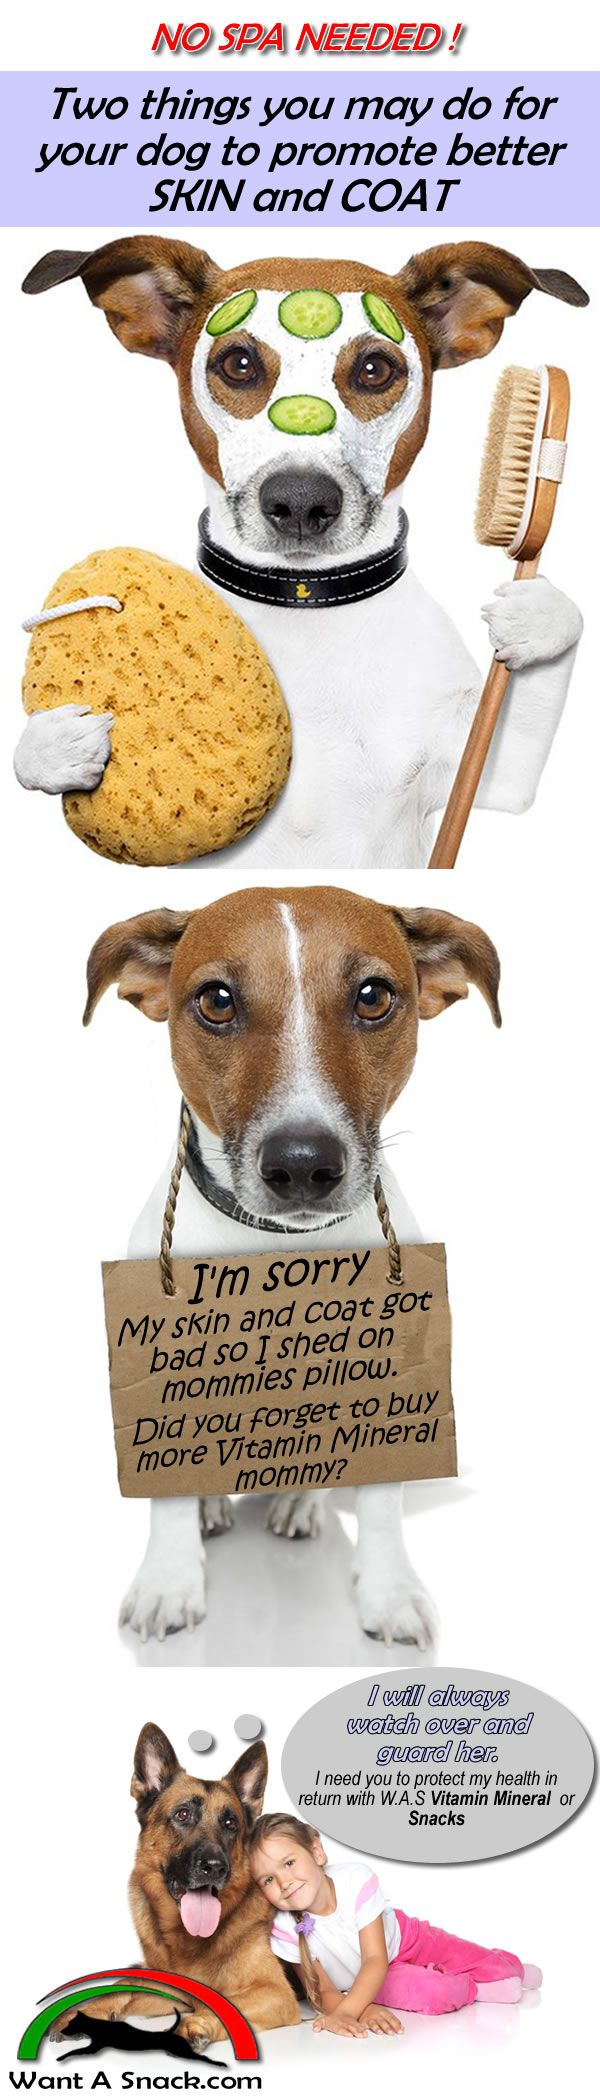 Read the true testimony of our customers  how W.A.S keeps their dog healthy! http://www.wantasnack.com/testimonials/#marilyn  If you love your dog, try Snacks or our Vitamin Mineral power  just add about a tablespoon to their daily feeding for maximum health. Try V & M or  Snacks today.  http://www.wantasnack.com/family-dogs/